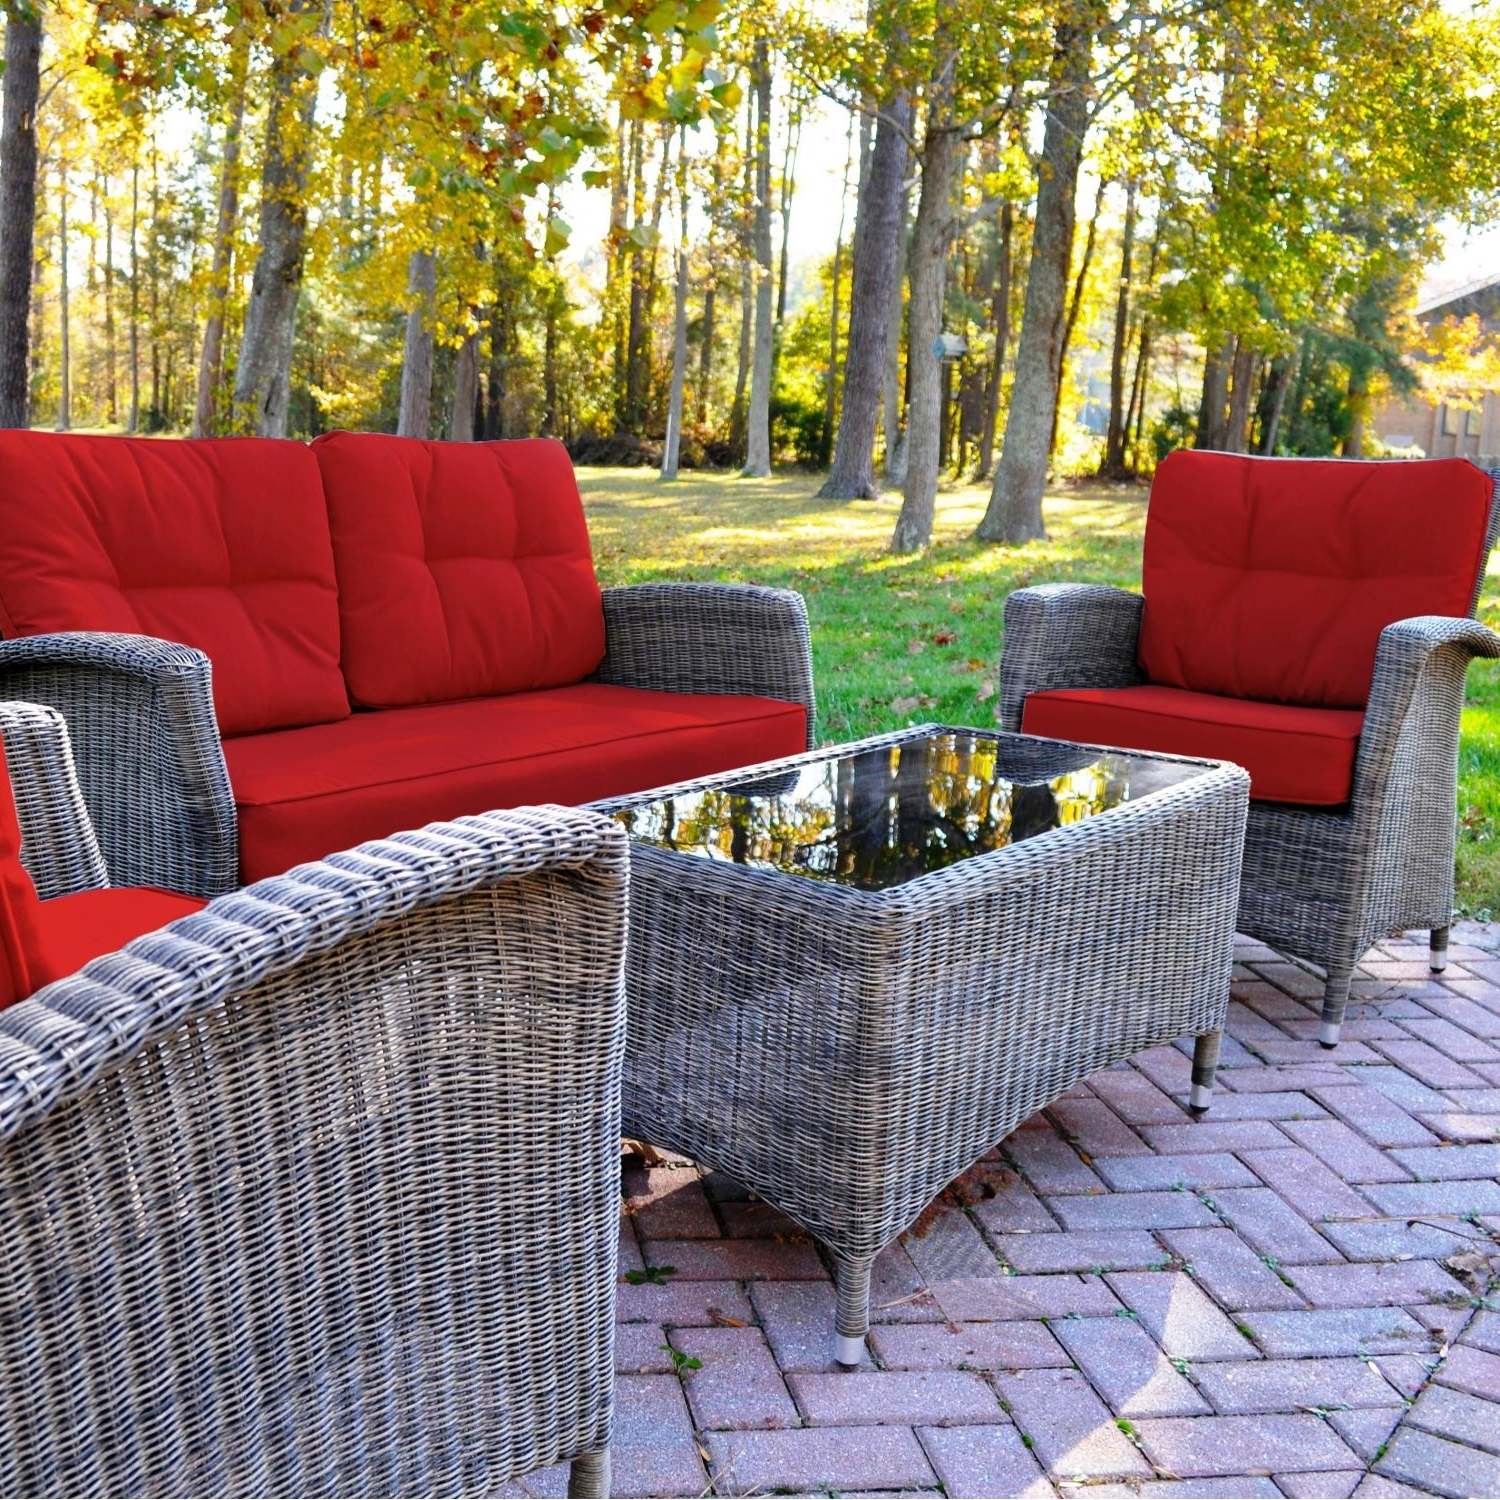 Well Known Patio Conversation Sets With Cushions For Kettler Lakena 4 Piece Wicker Patio Conversation Set With Jockey Red  Cushions (View 17 of 20)